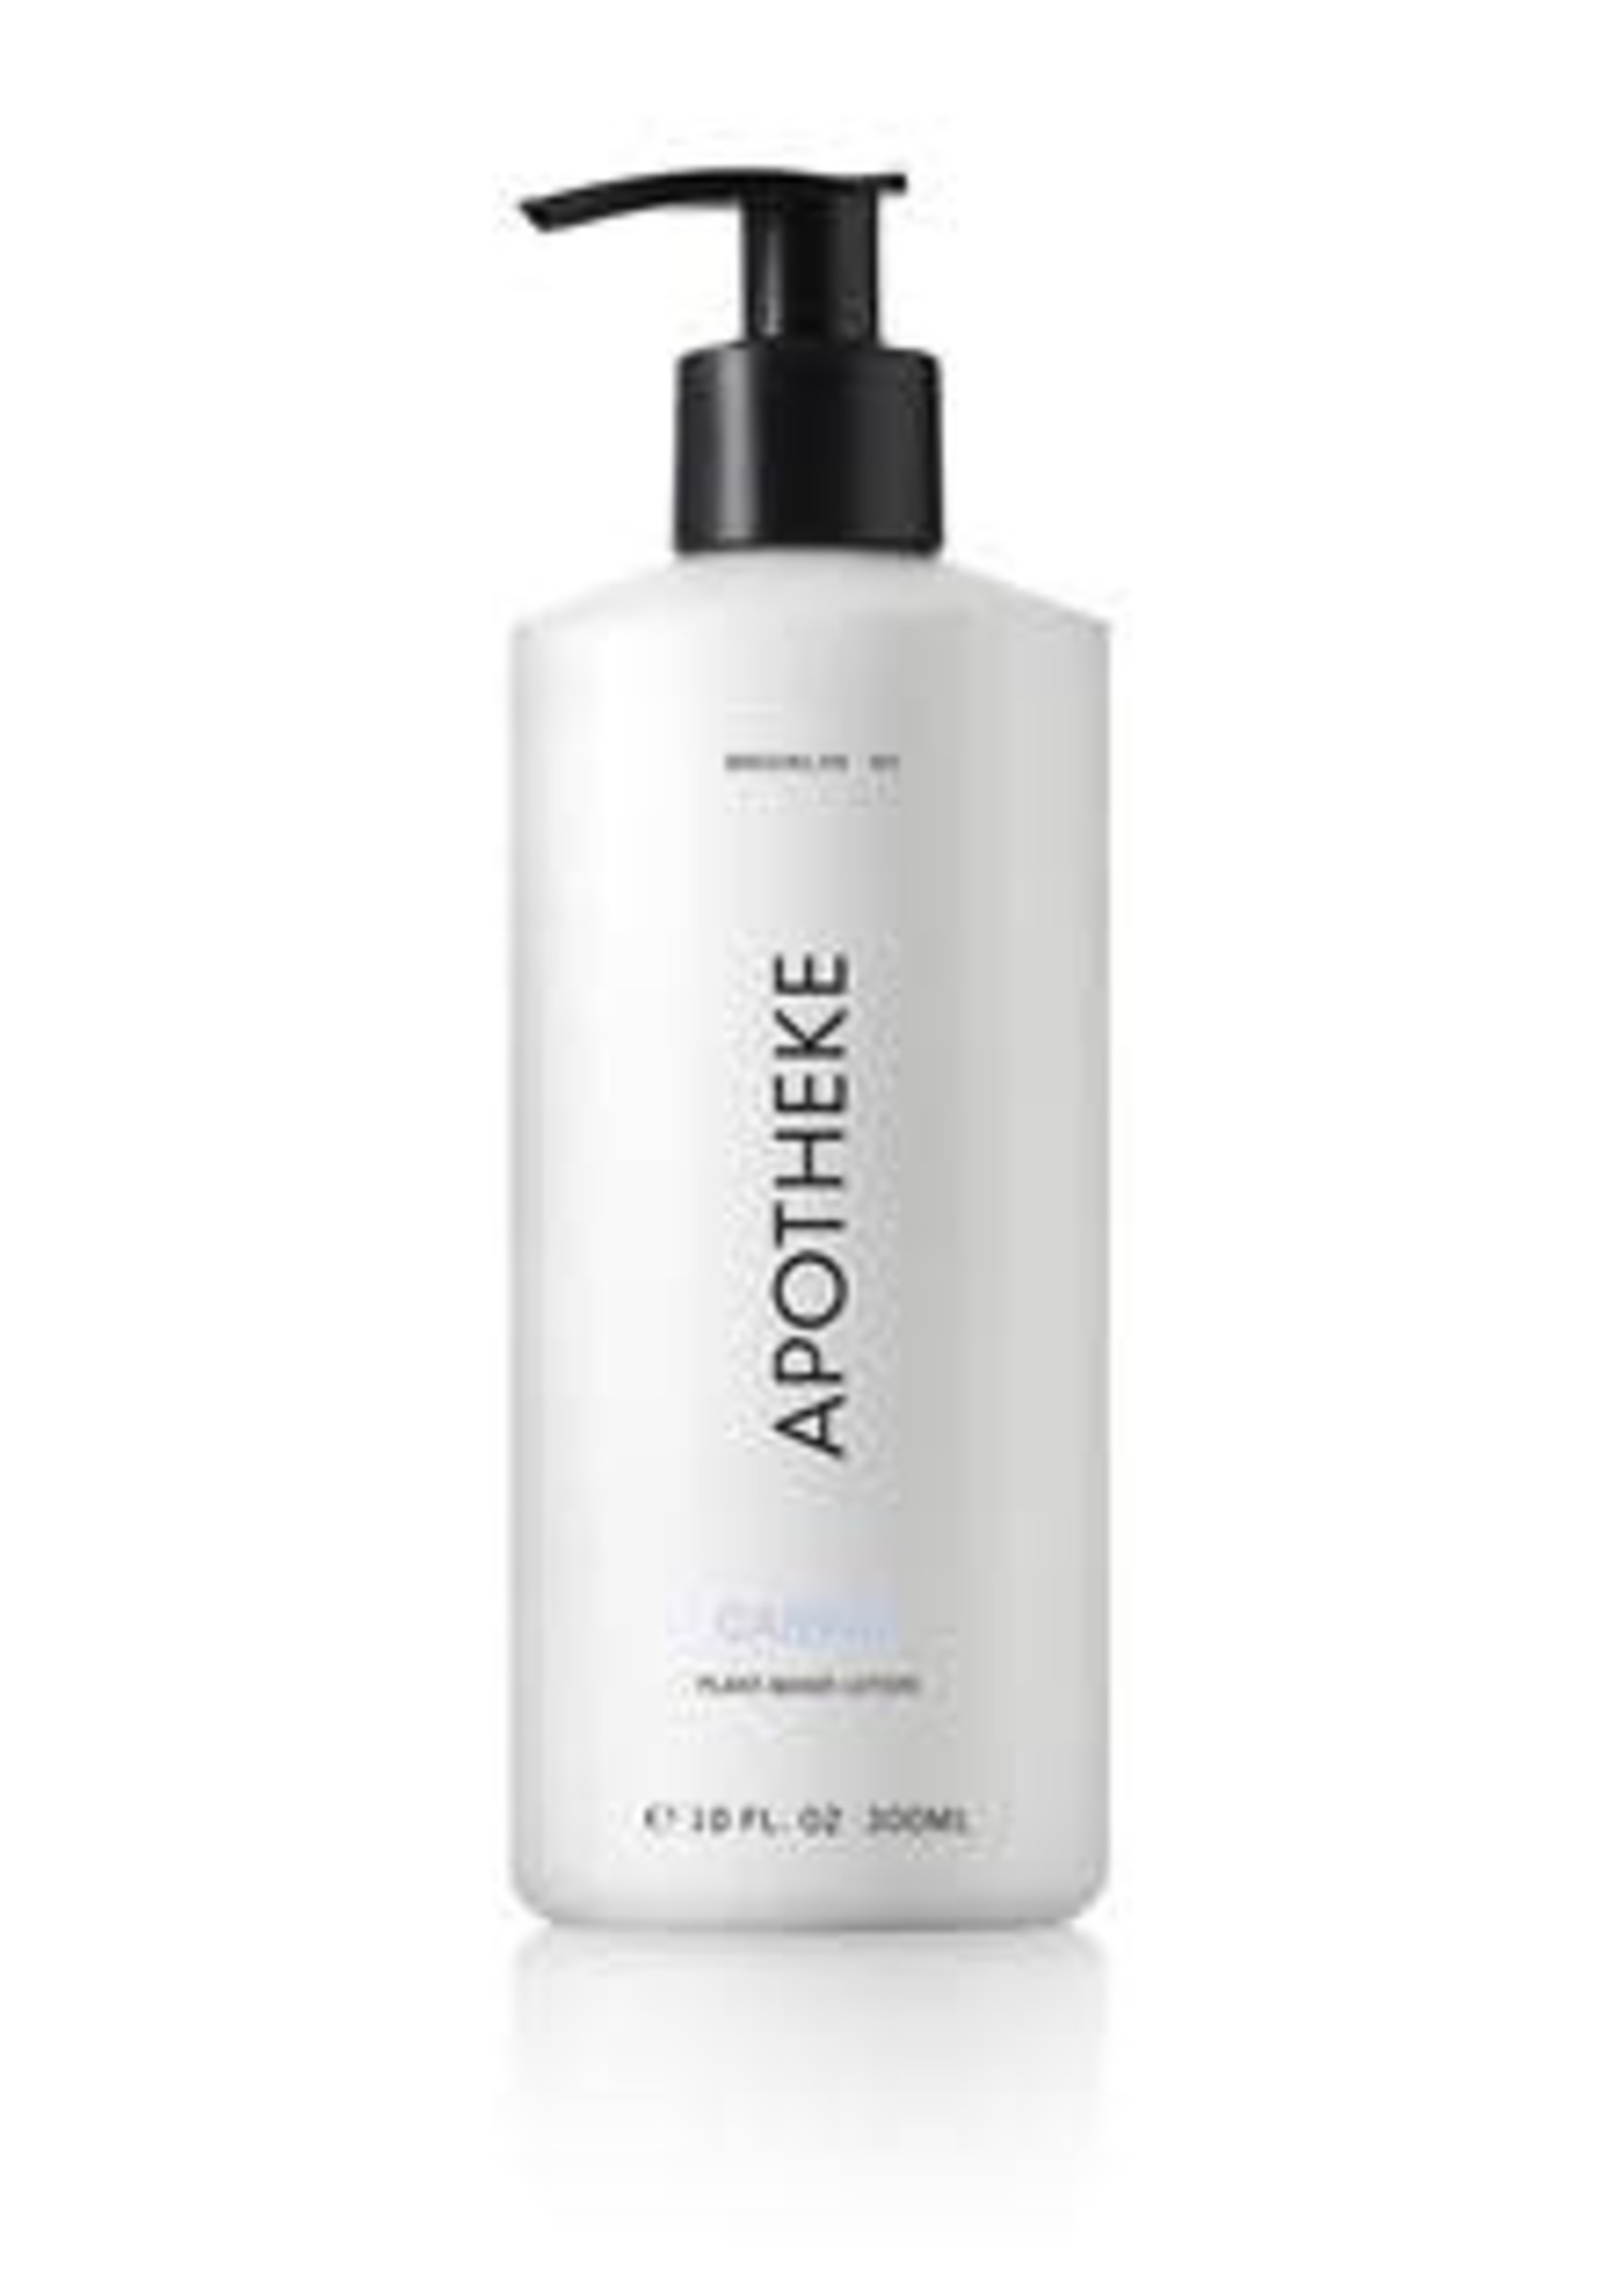 Apotheke Apotheke Canvas Lotion